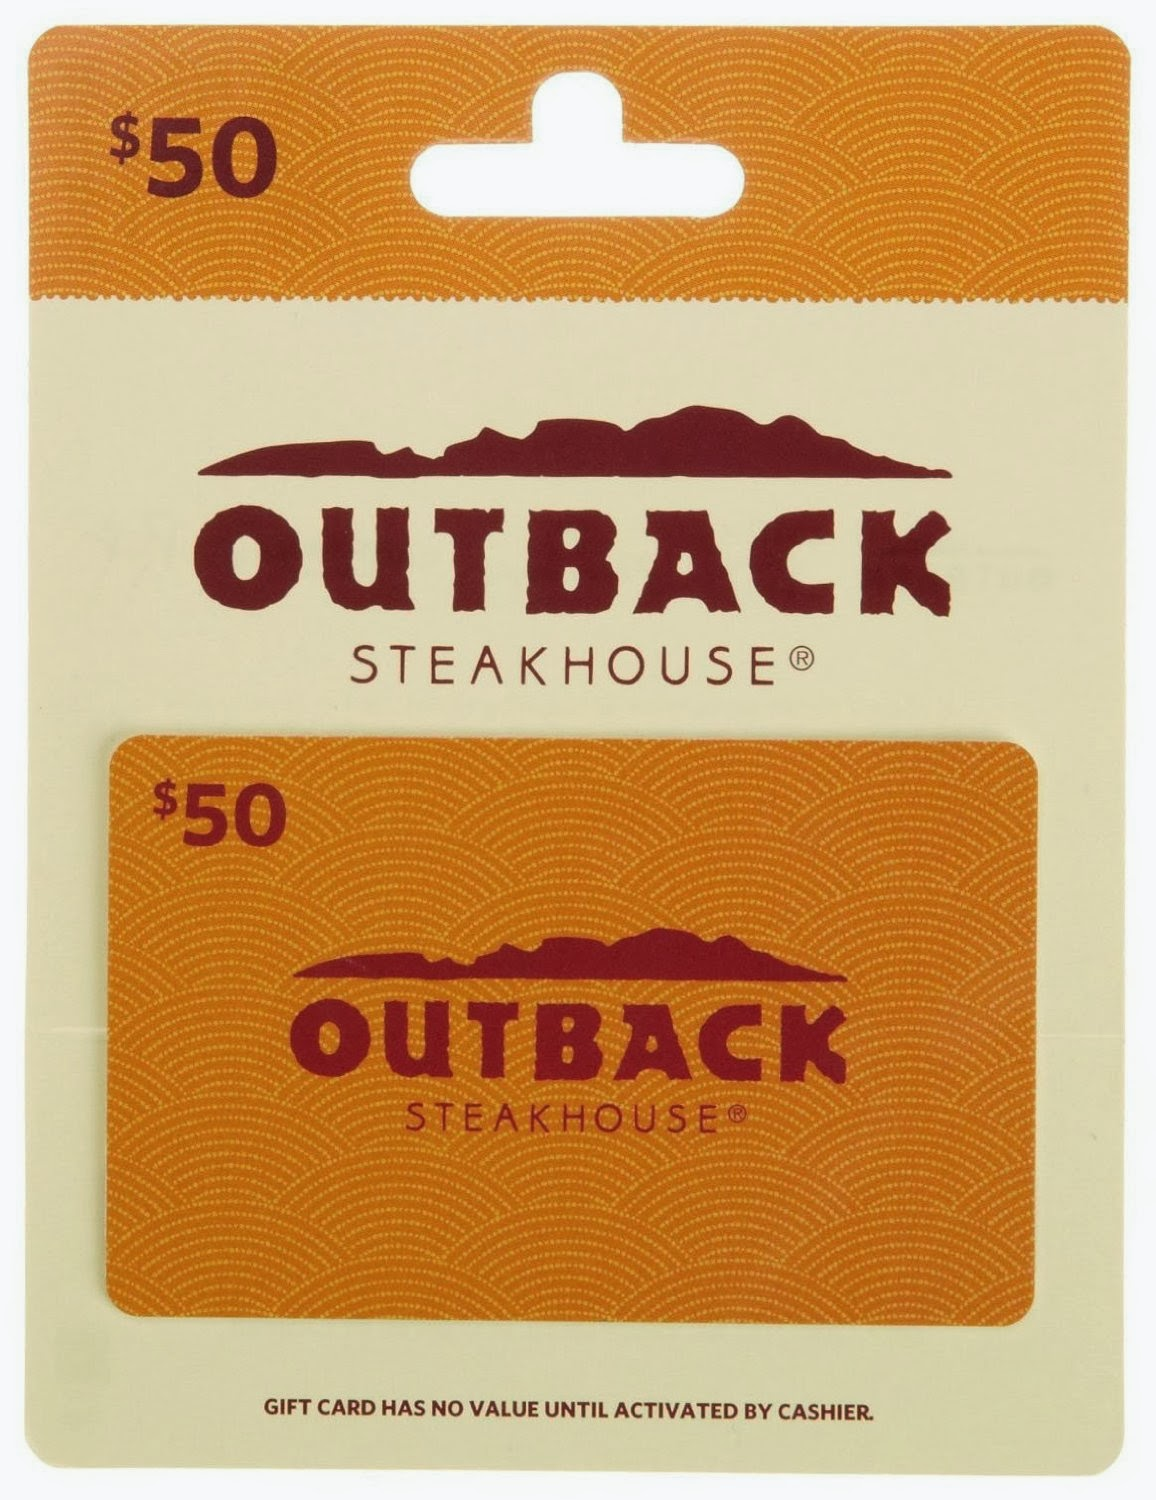 Outback gift card